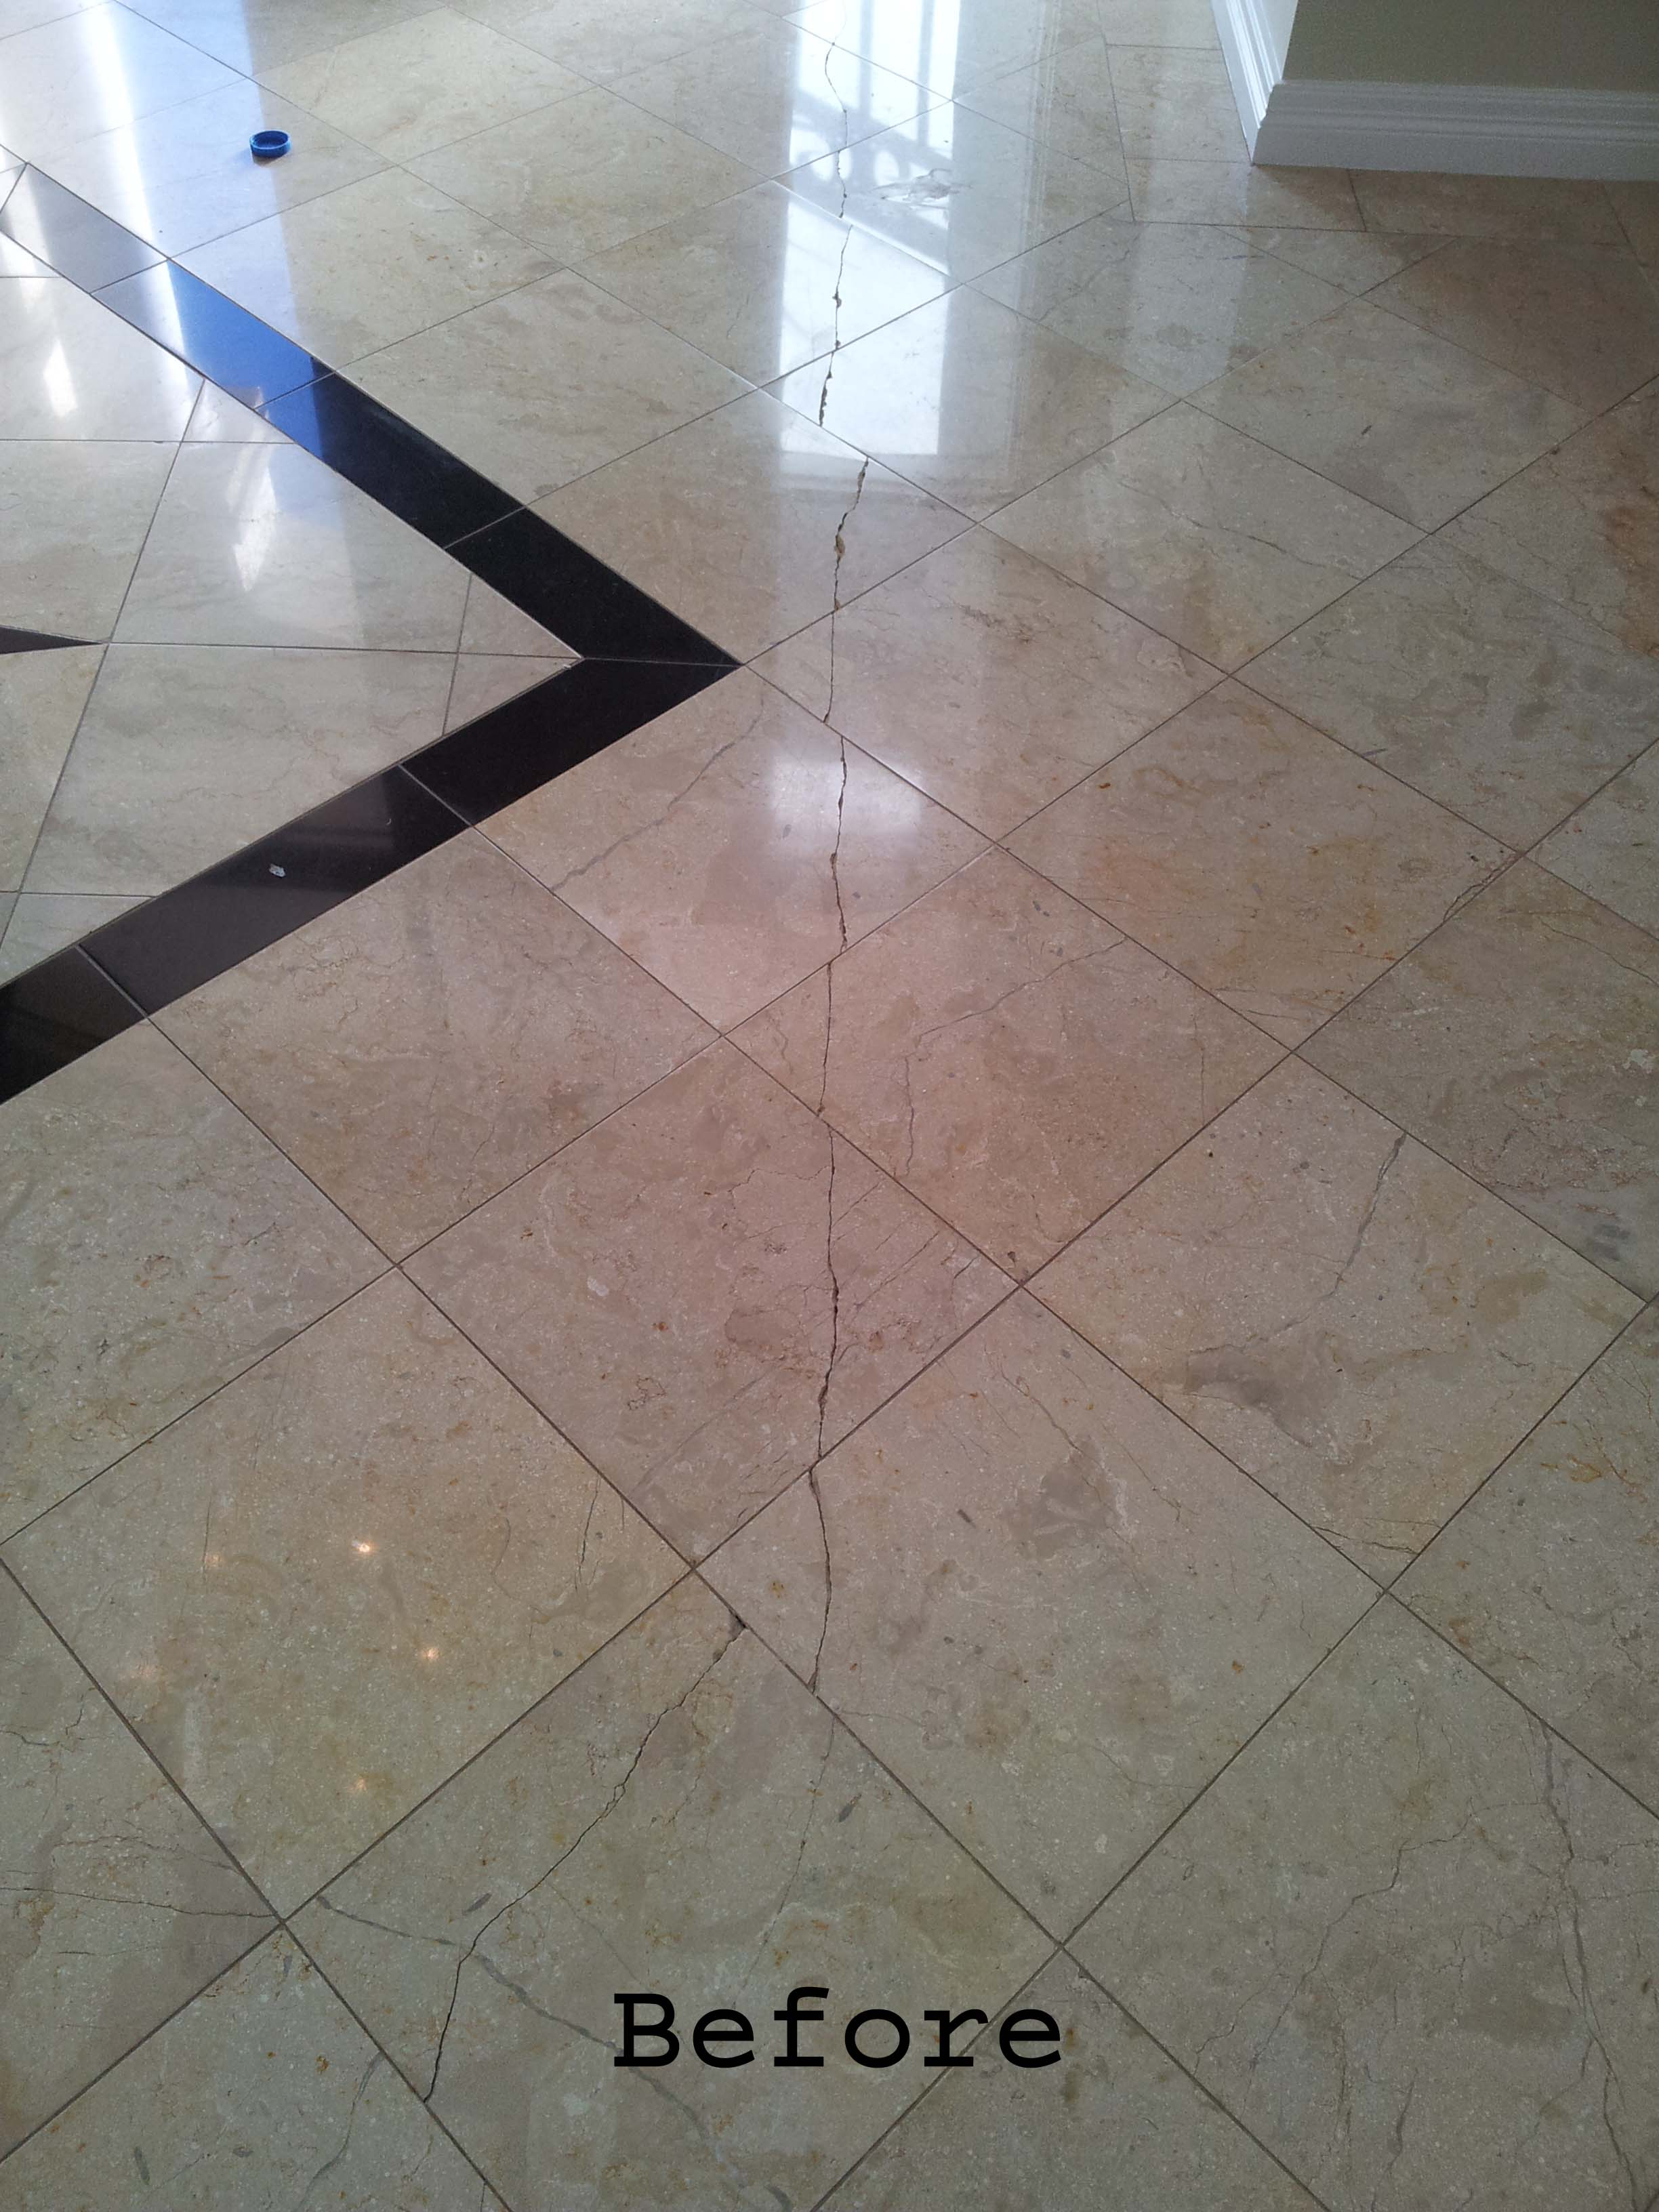 Repairing cracked & damaged marble, limestone, travertine, sandstone,  granite & tiled floors ...